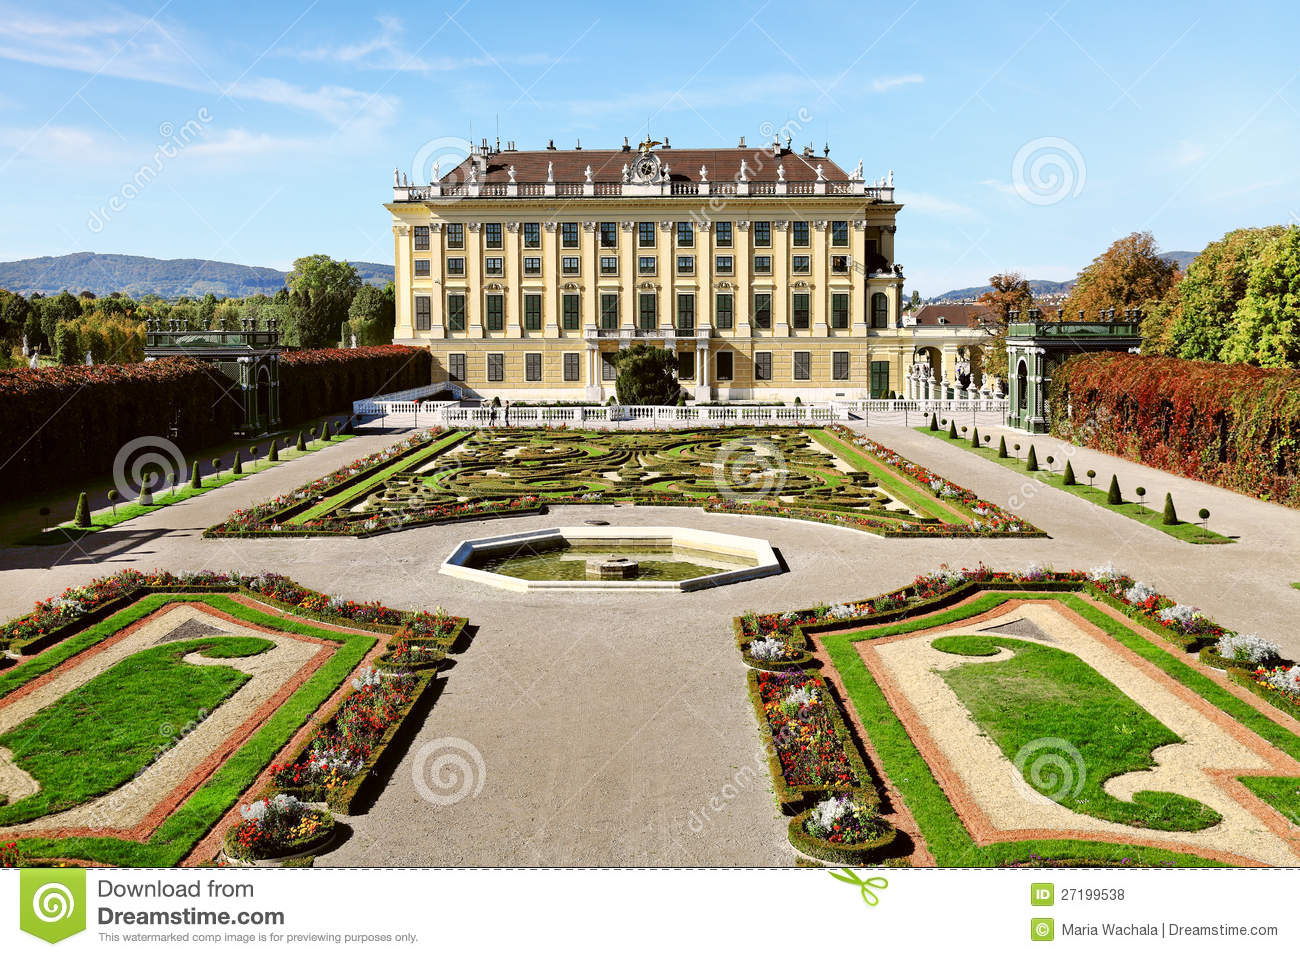 Schonbrunn Palace In Vienna, Austria Royalty Free Stock Photos.